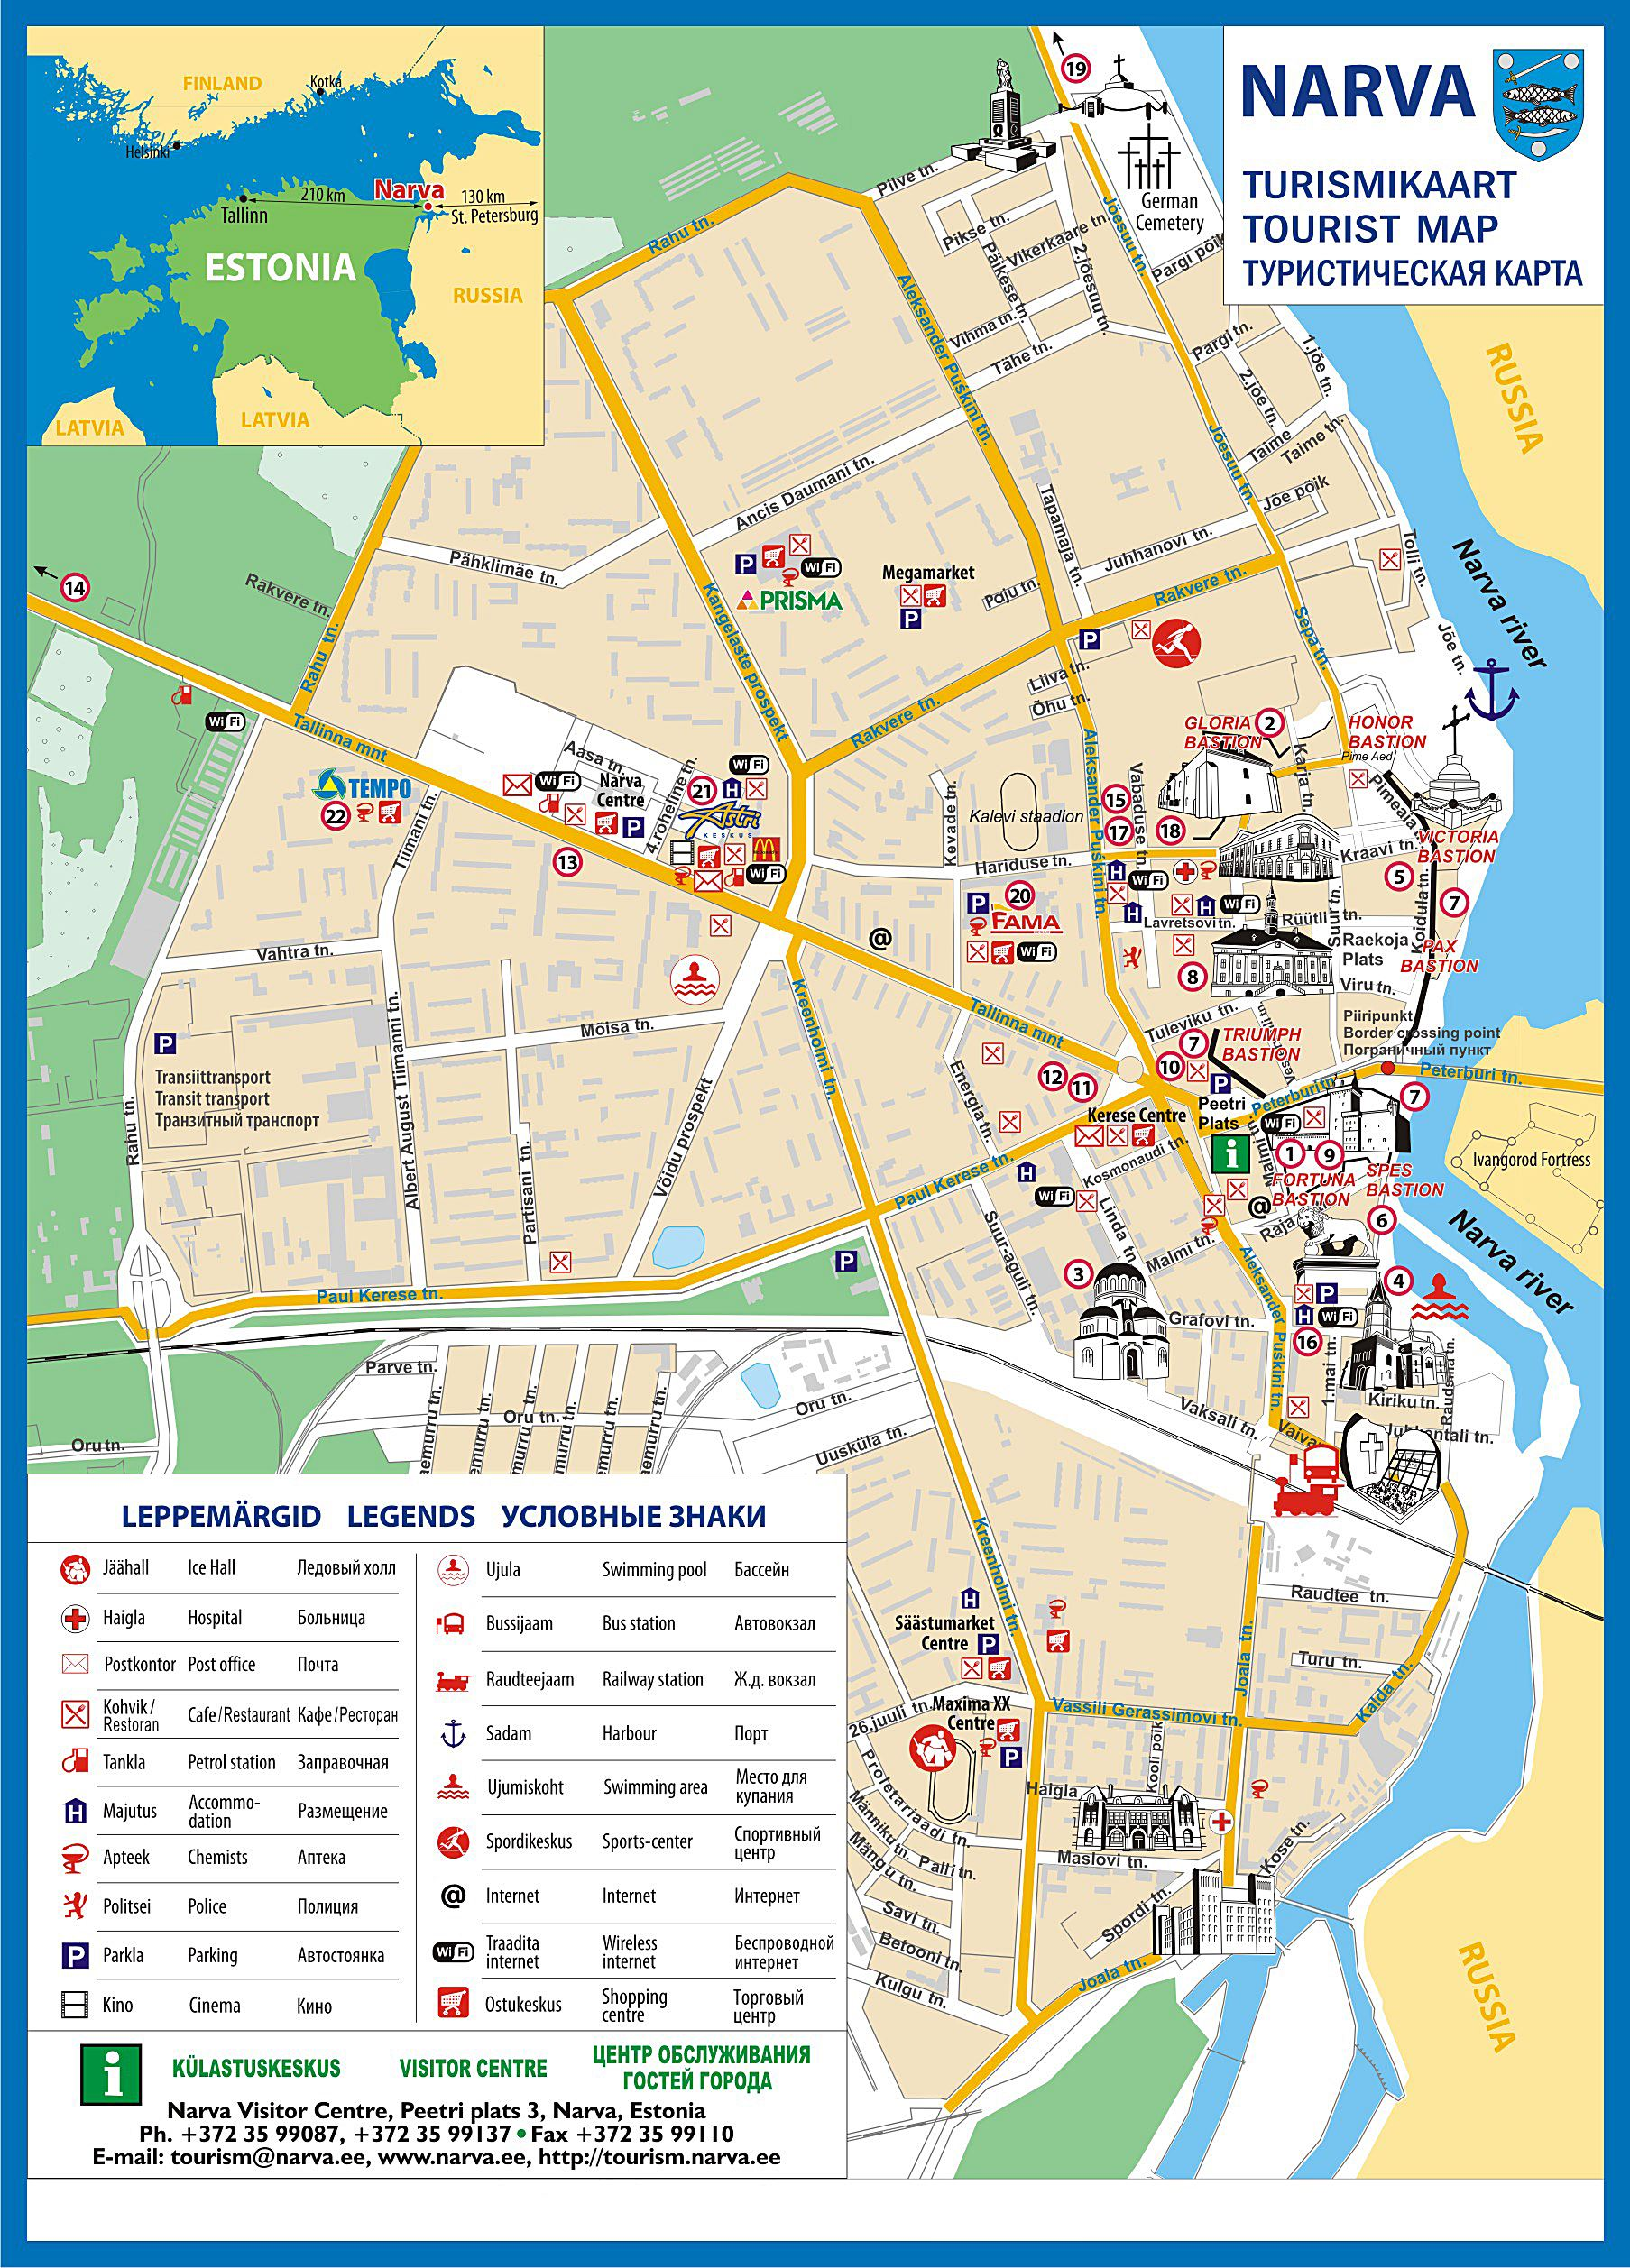 Narva Estonia Map Large Narva Maps for Free Download and Print | High Resolution and